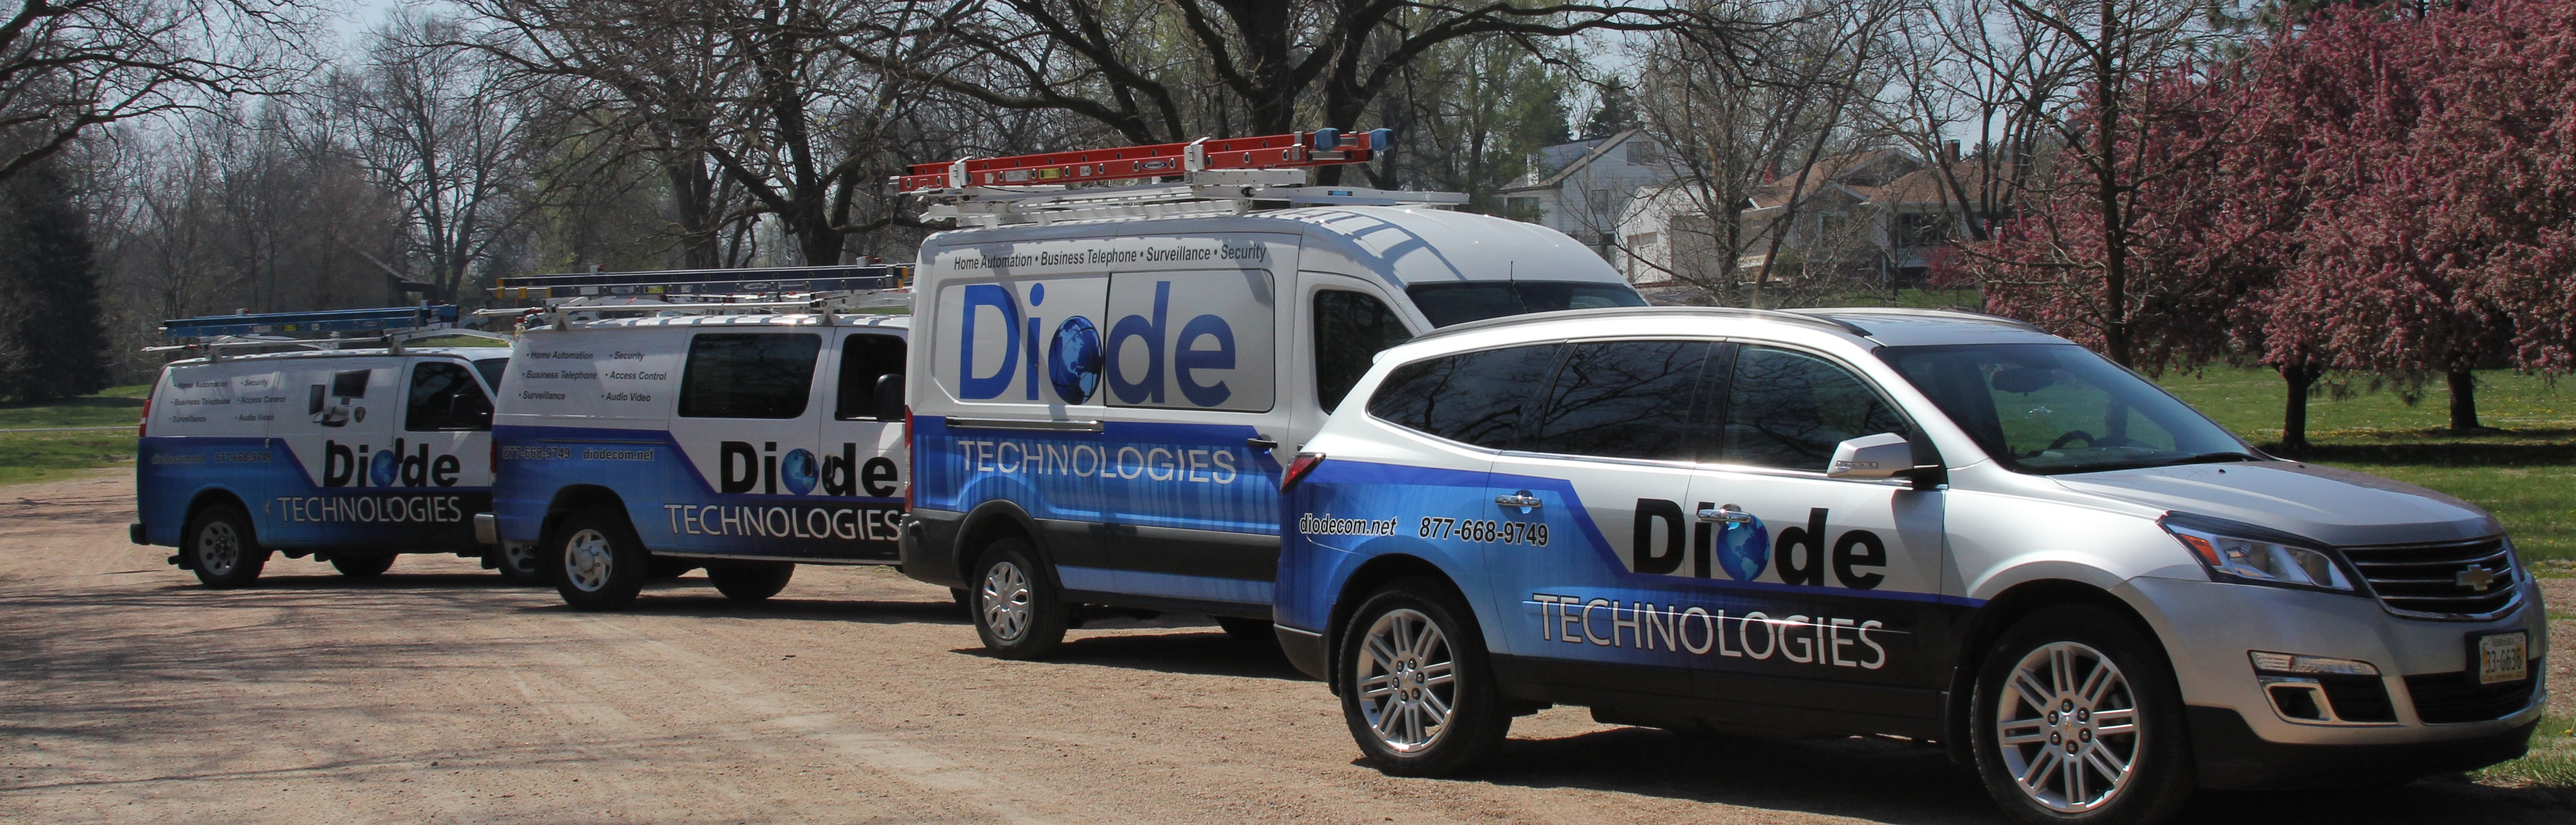 Diode Tech About Us Photo